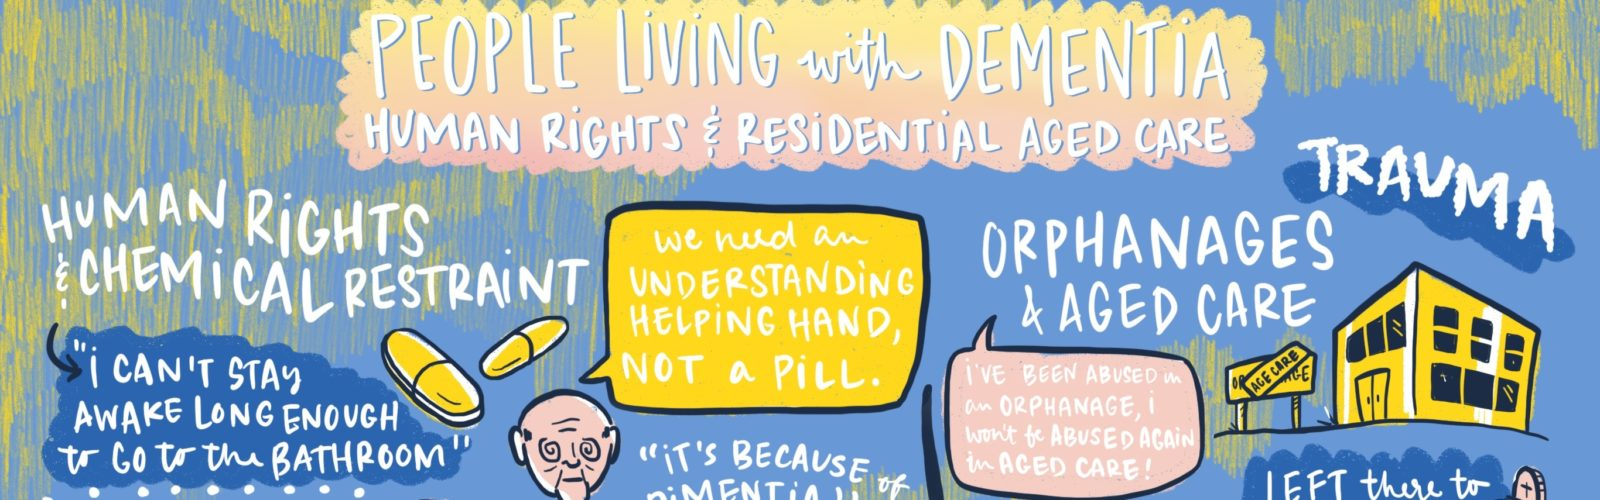 Human Rights and Dementia Care